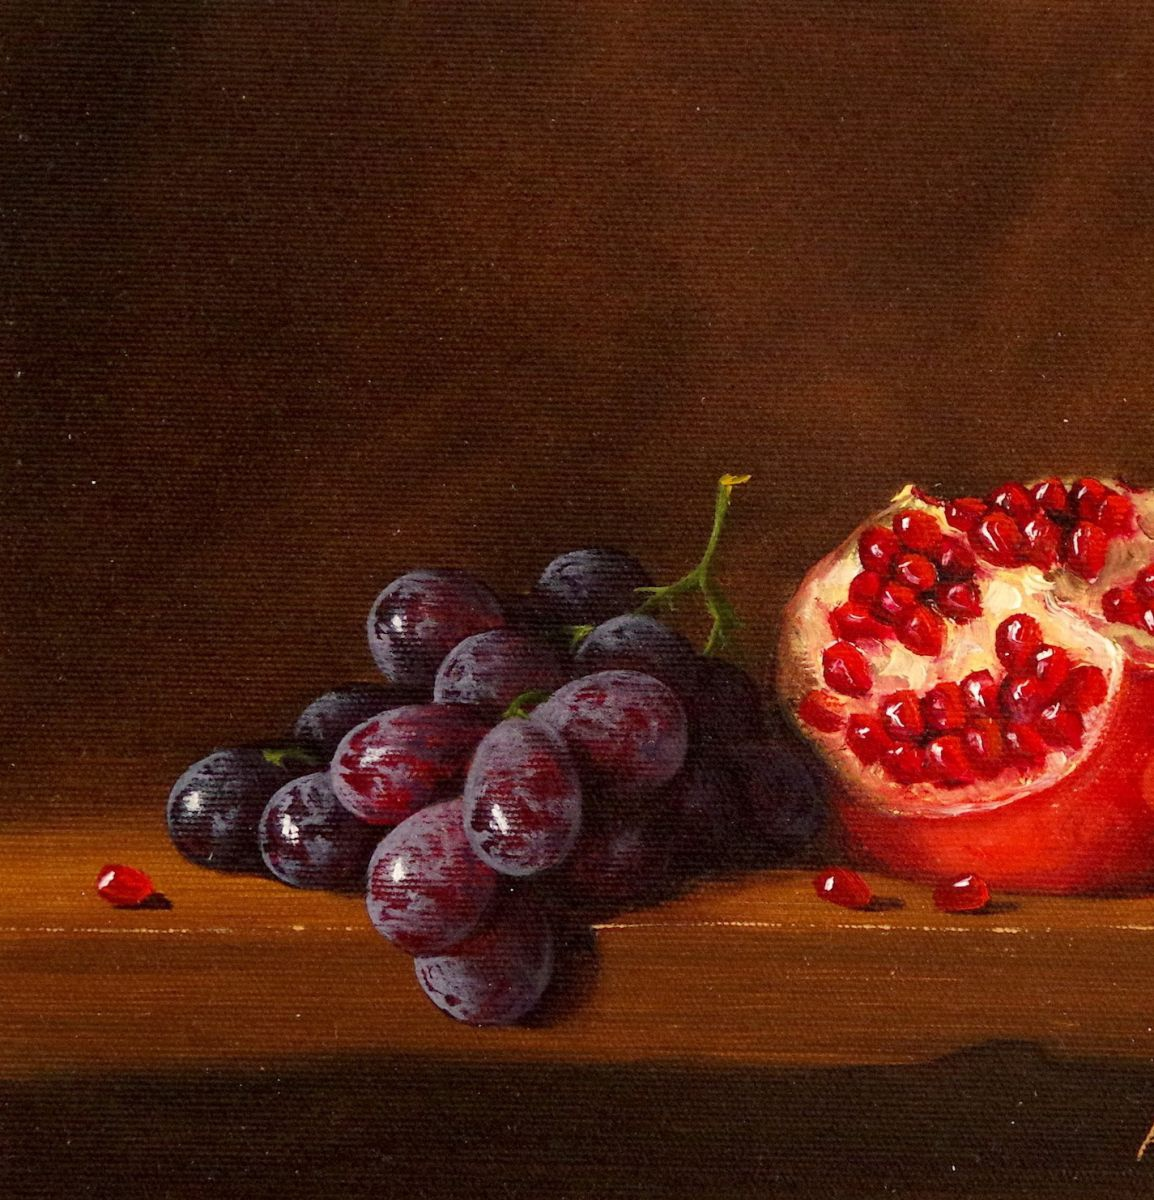 Pomegranate Painting For Sale